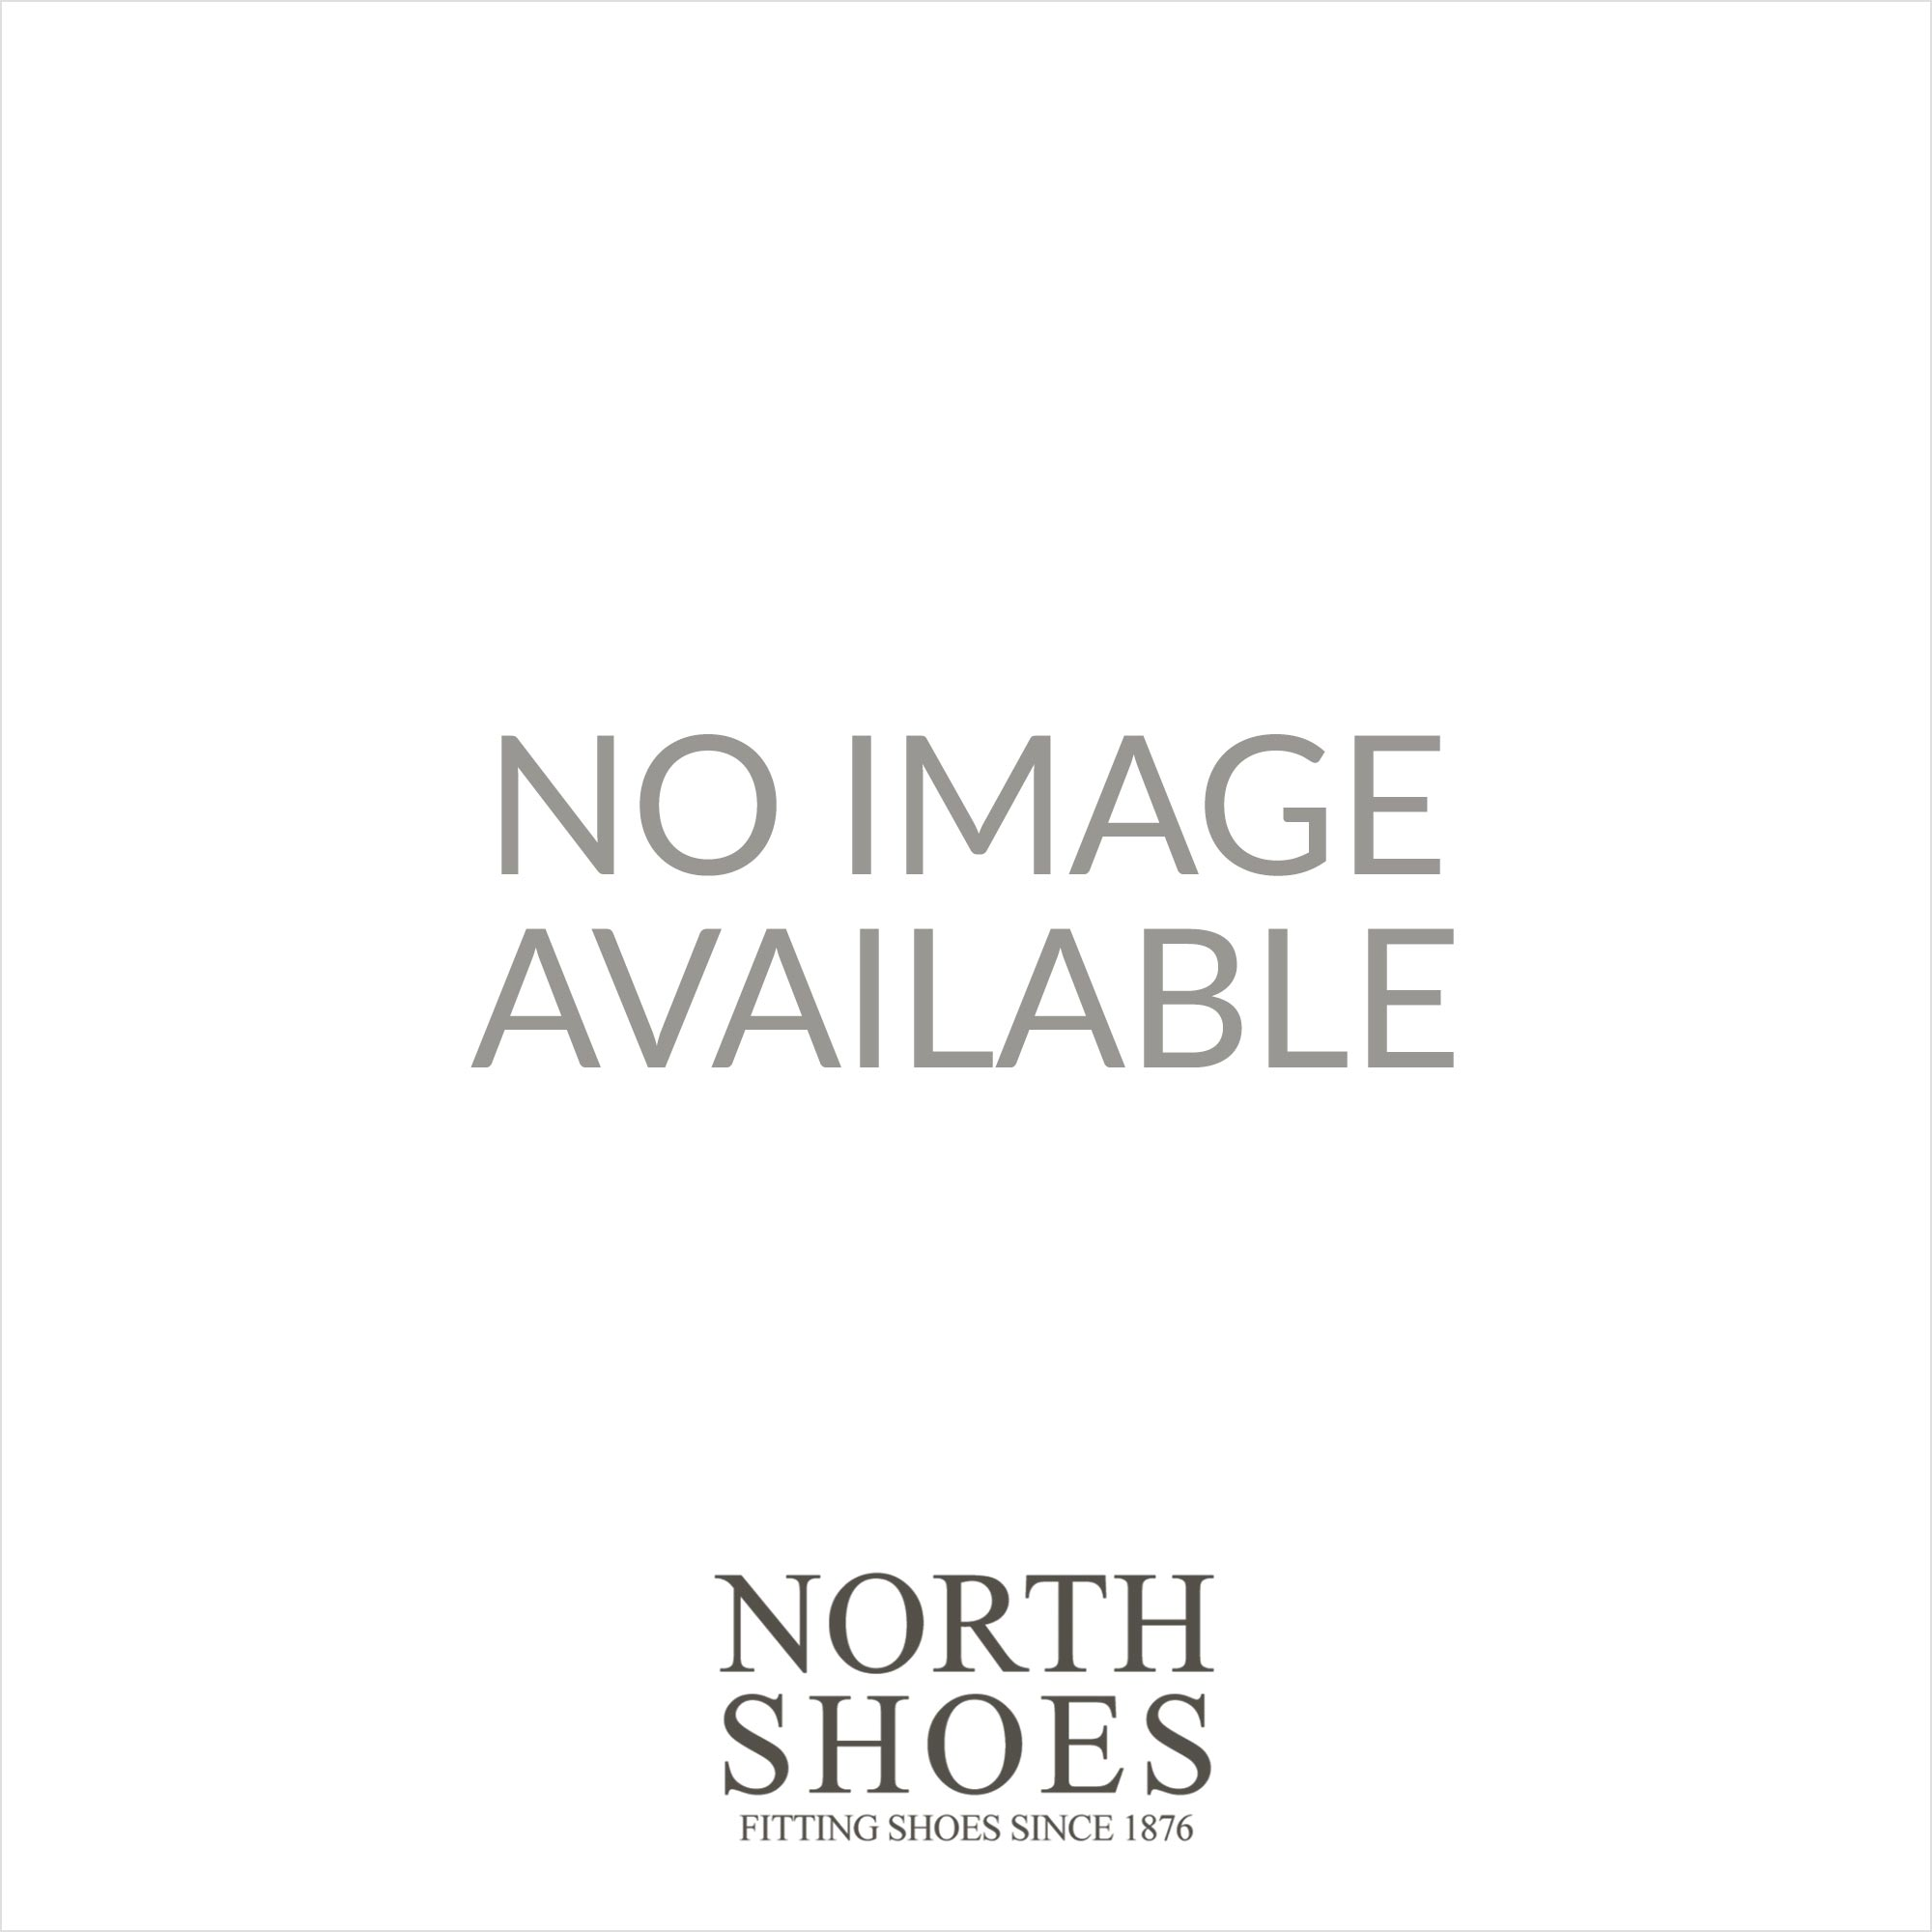 c7b2428acca9 Clarks Tri Alexia Black Leather Womens Slingback Sandal - UK 4½ - Clarks  from North Shoes UK